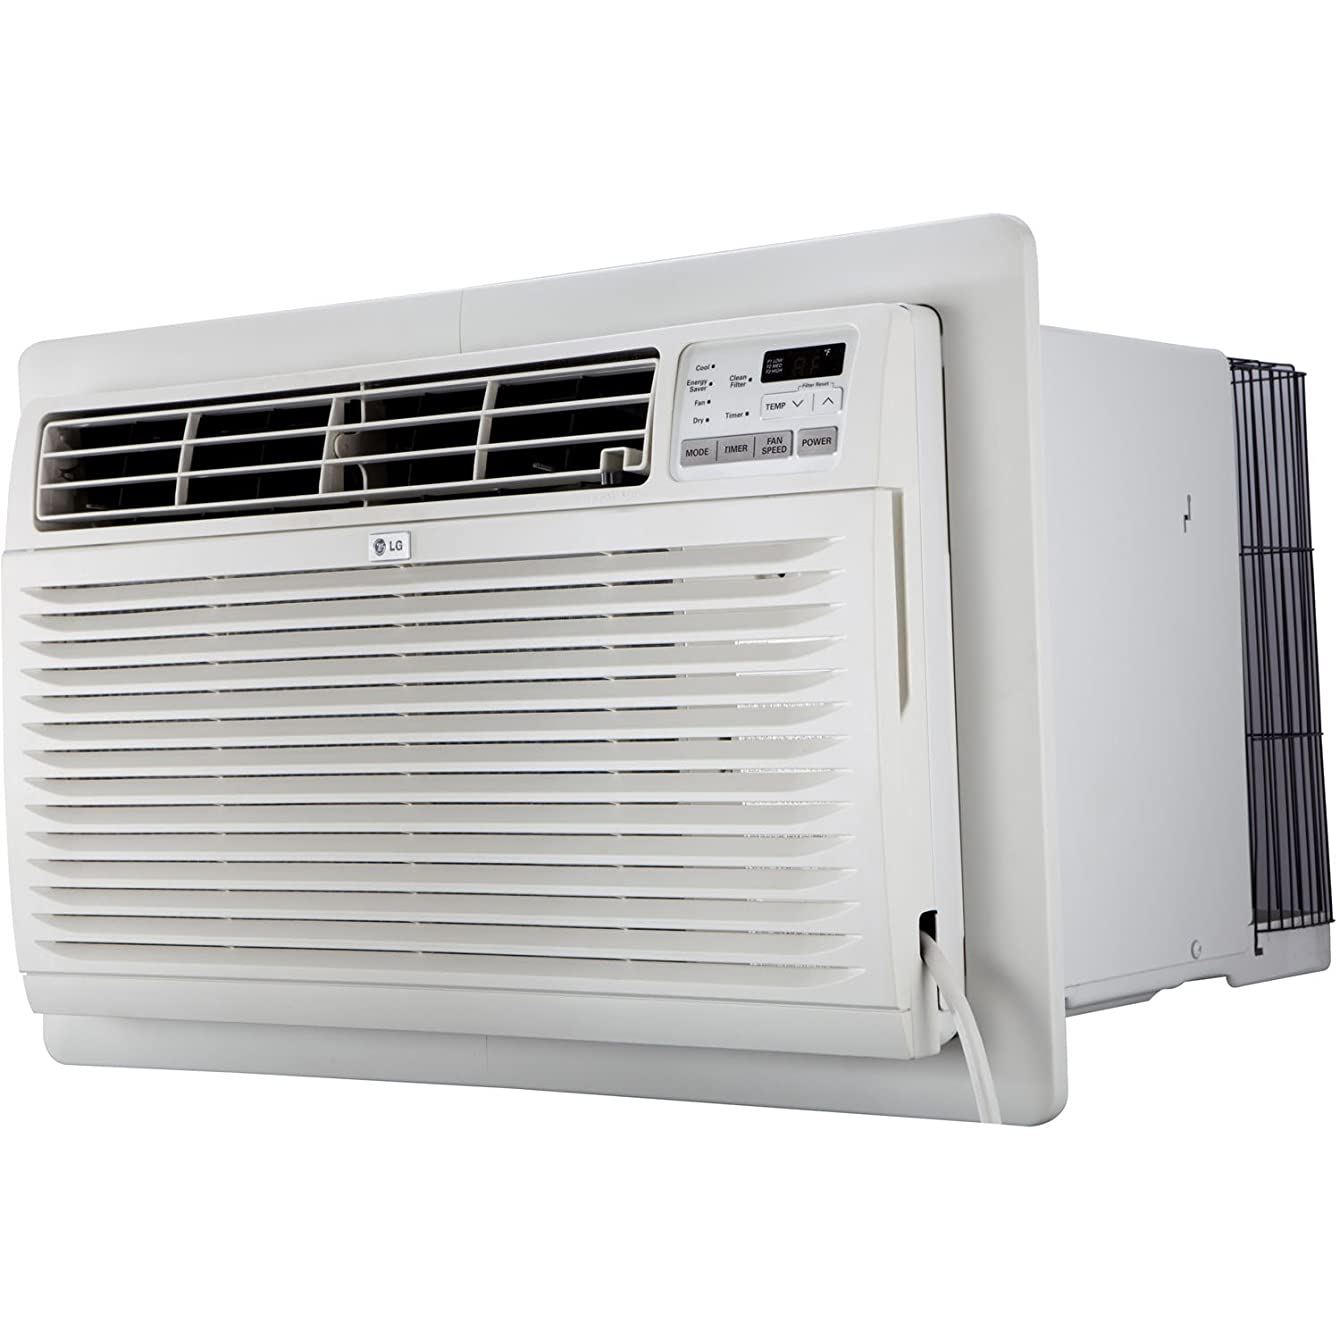 LG LT1216CER 11,800 BTU 115V Through-the-Wall Air Conditioner with Remote Control